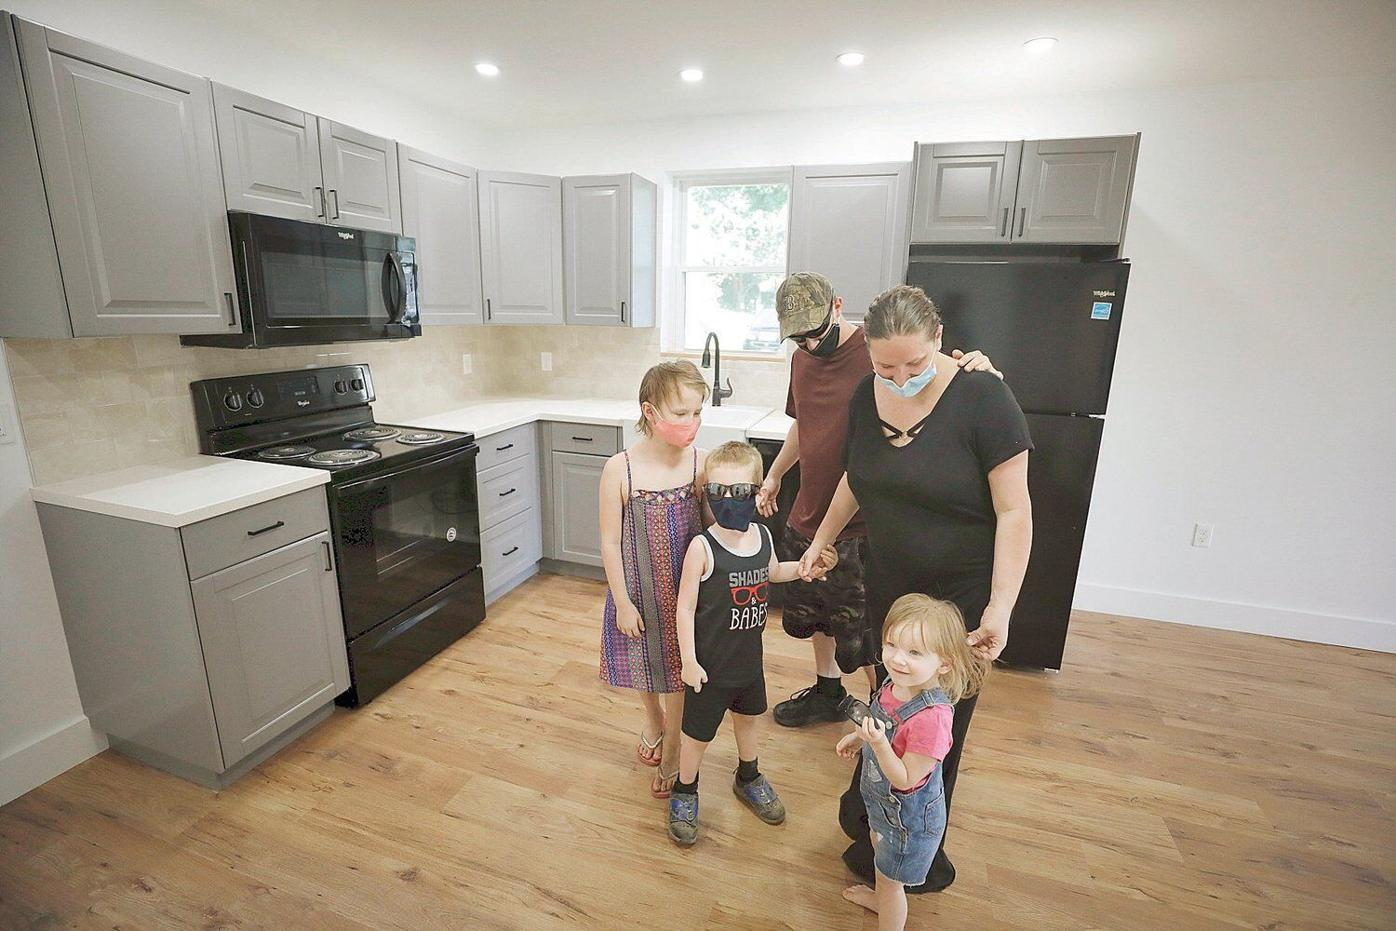 2 families now have houses to call home through Habitat for Humanity building blitz